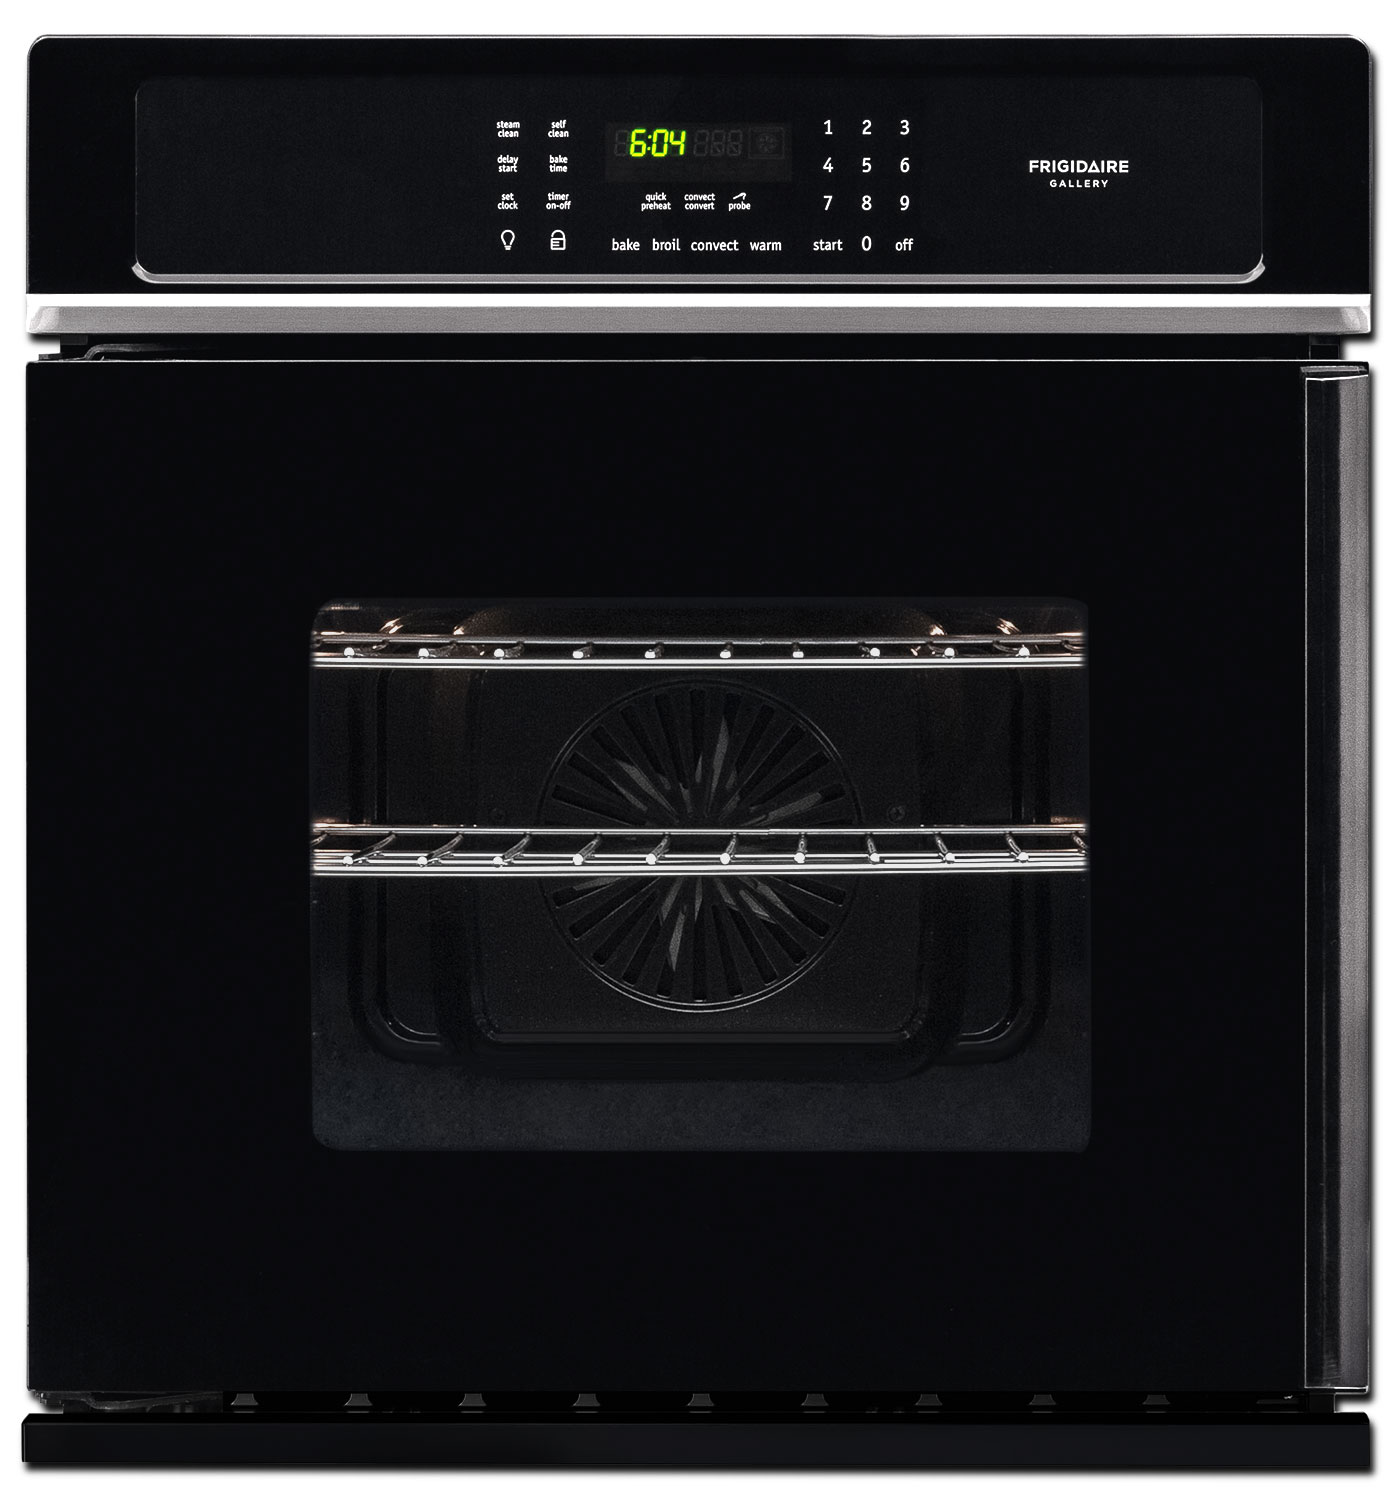 Cooking Products - Frigidaire Gallery 3.8 Cu. Ft. Single Wall Oven – FGEW276SPB